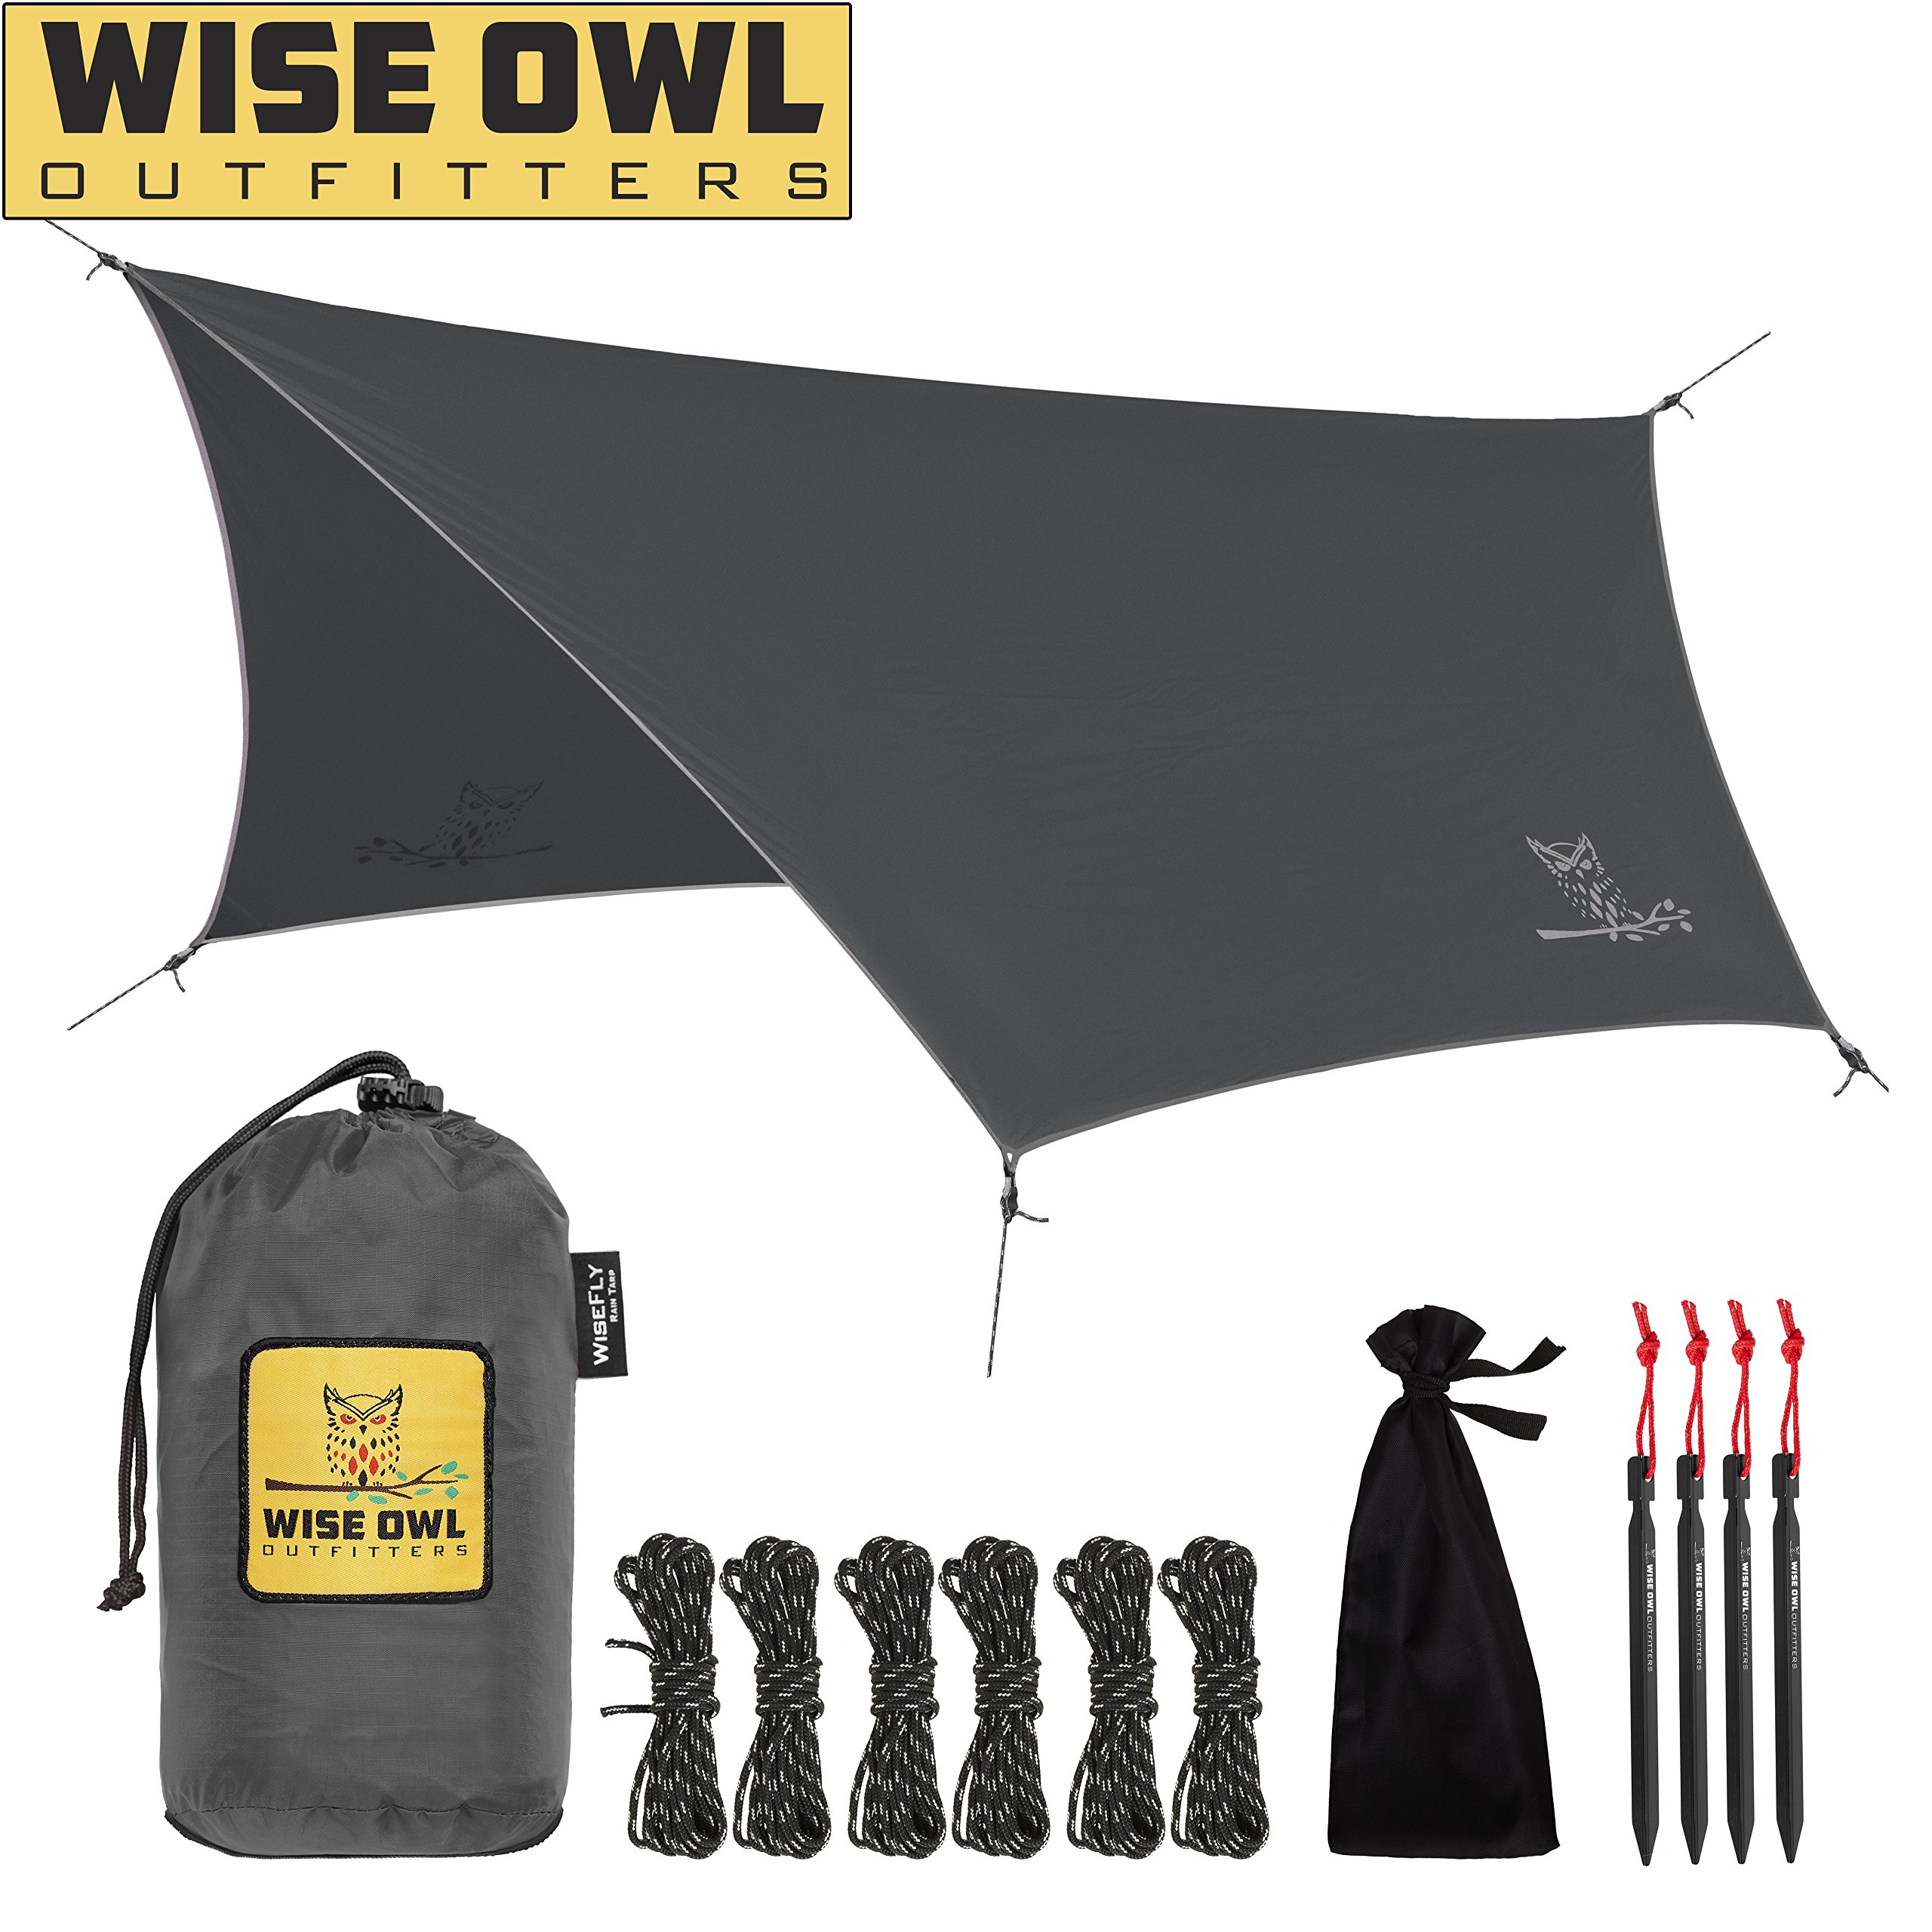 Wise Owl Outfitters Hammock Rain Fly Tent Tarp - The WiseFly Premium 11 x 9 ft Large Hex Waterproof Ripstop Nylon Camping Shelter Canopy Rainfly - Lightweight Camp Gear Accessories - Grey by Wise Owl Outfitters